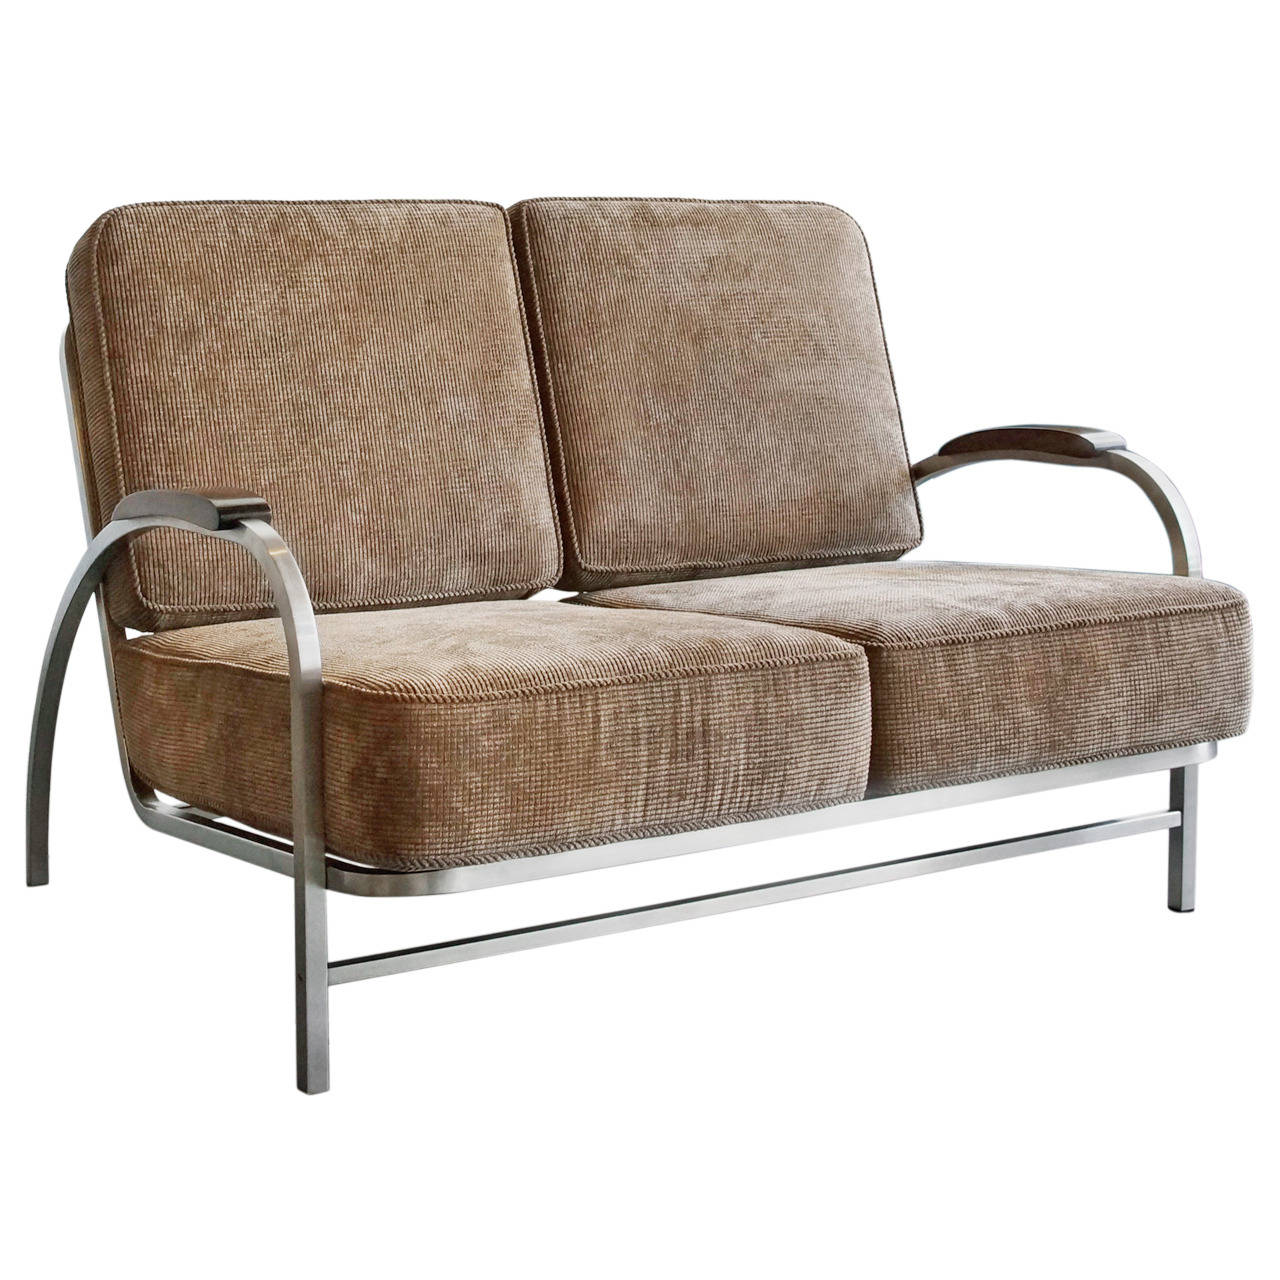 Retro Style Sofa Fulham 2 Seater Sofa Natural Fabric Retro Style Thesofa